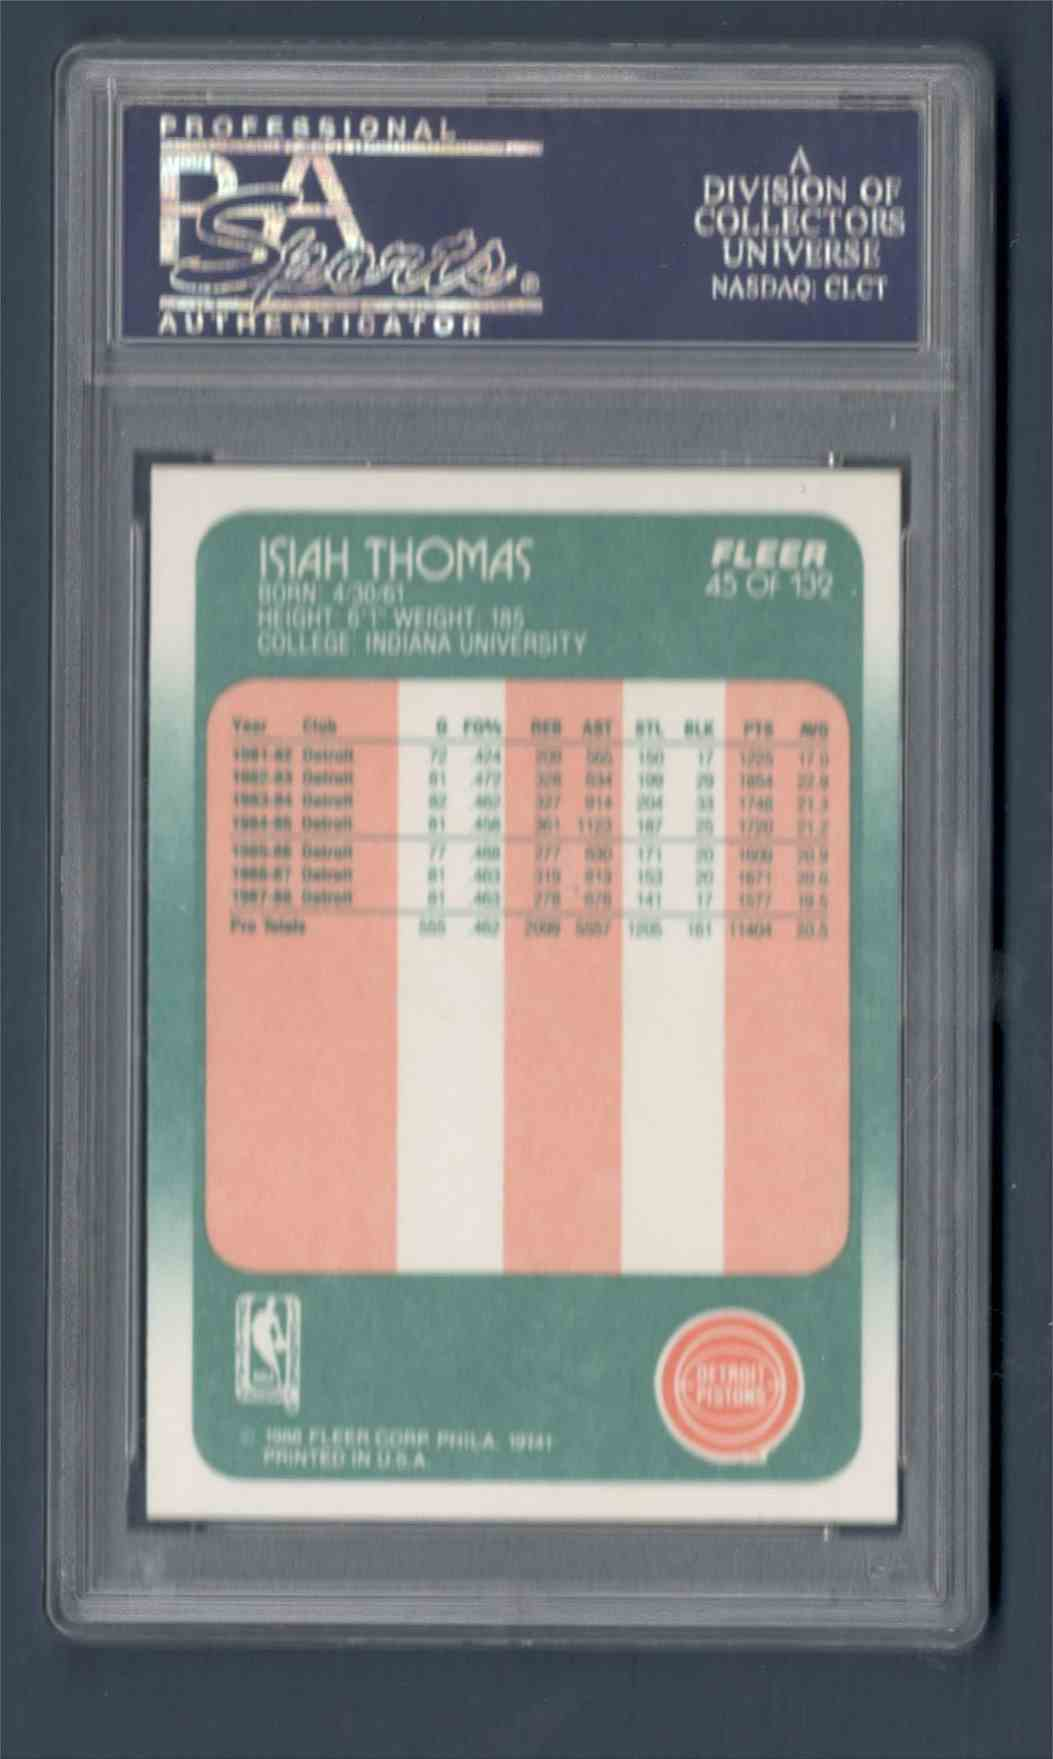 1988-89 Fleer Isiah Thomason #45 card back image